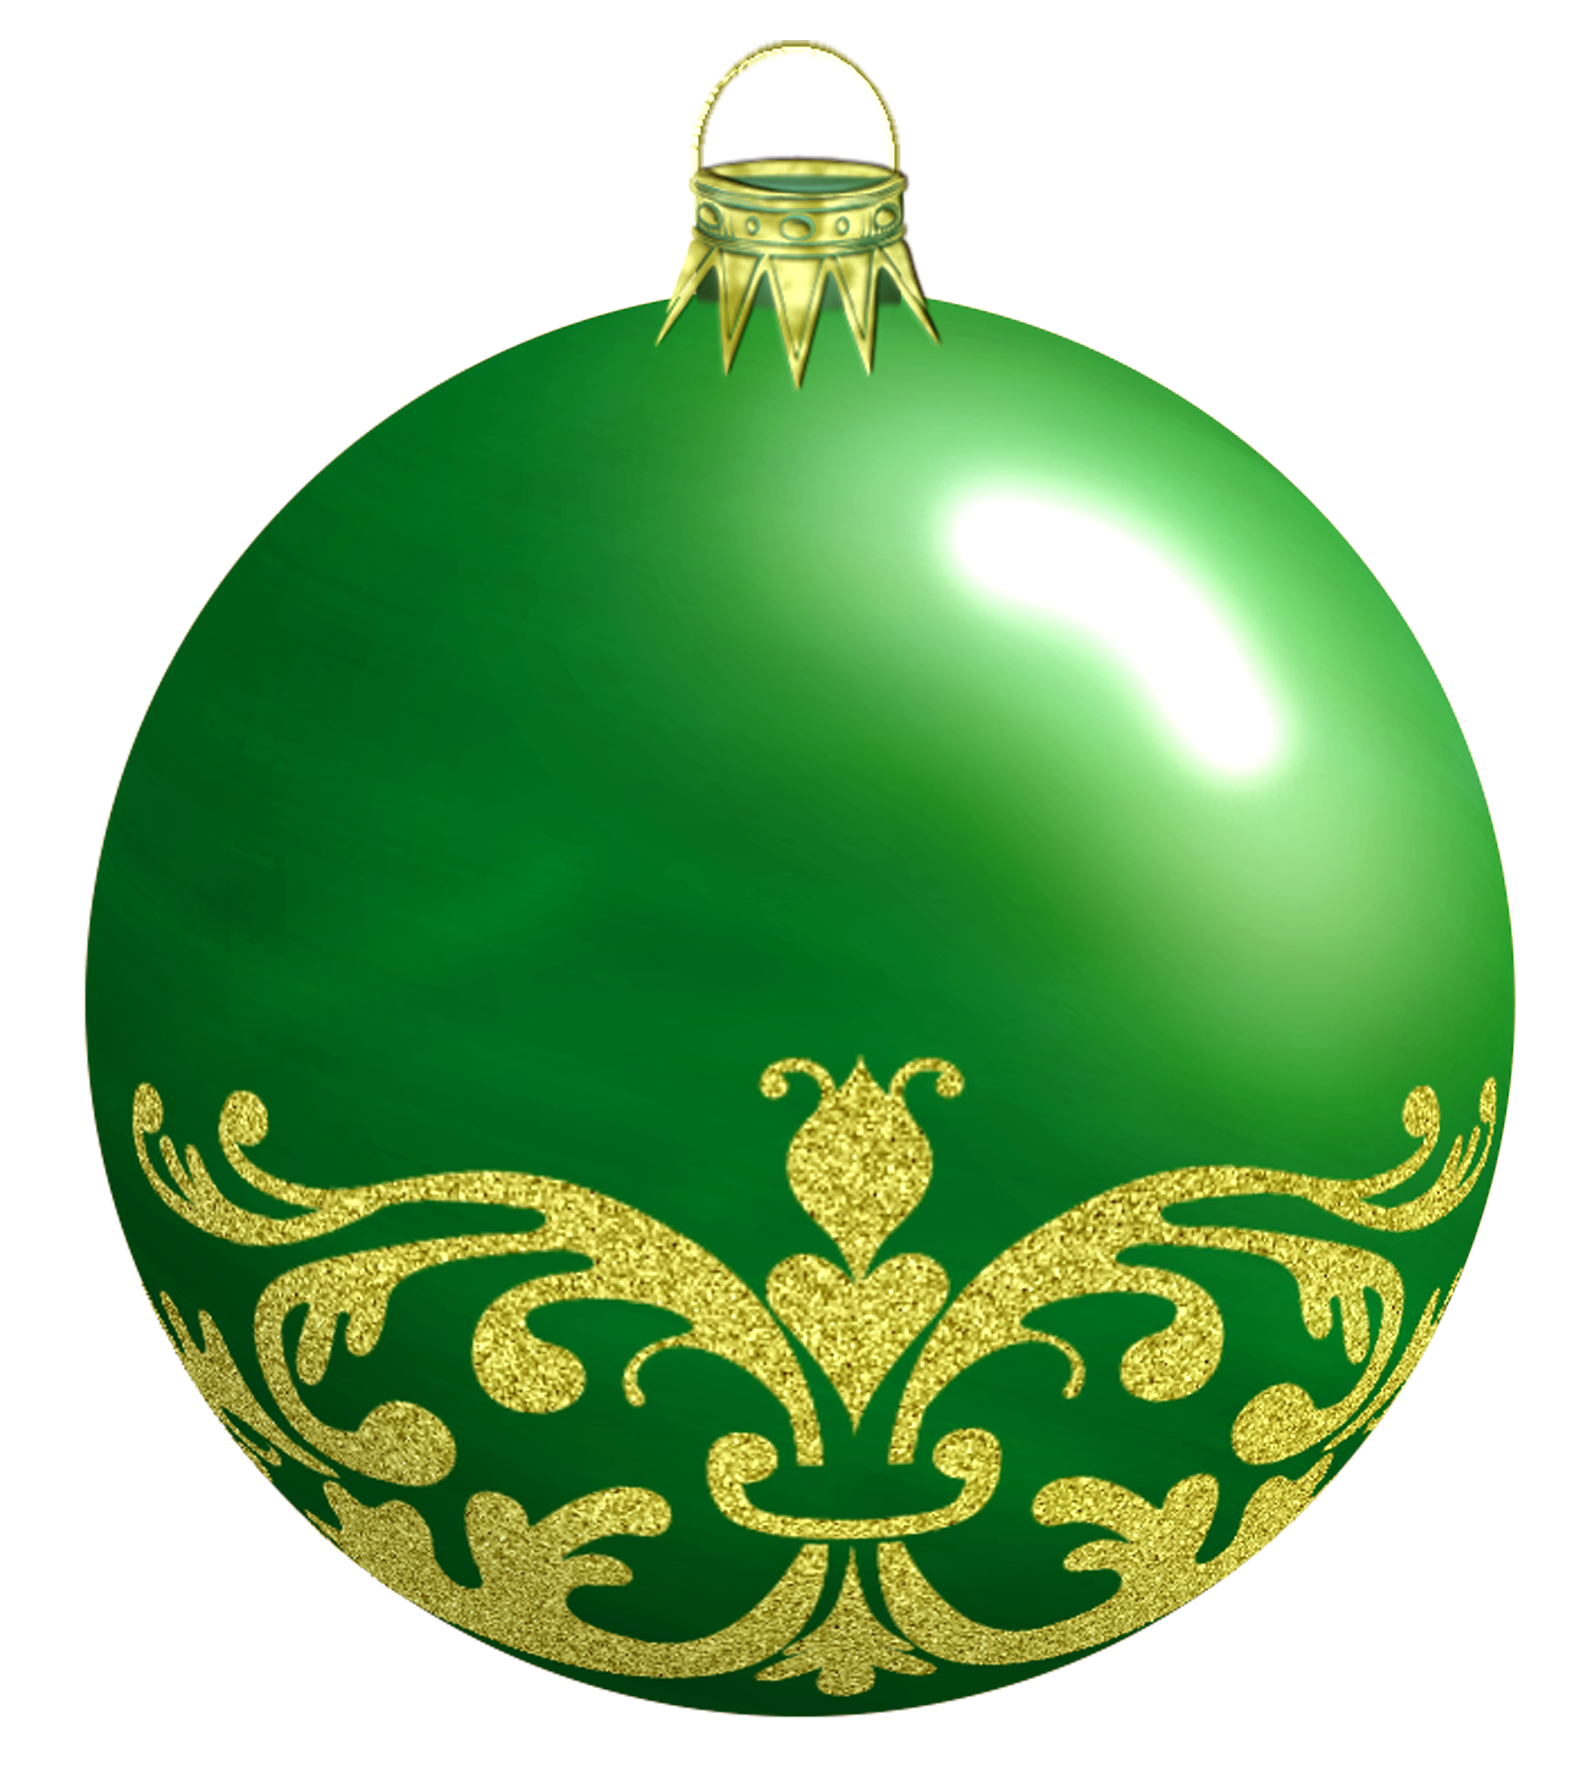 Green Christmas Bauble with Ornaments PNG Image